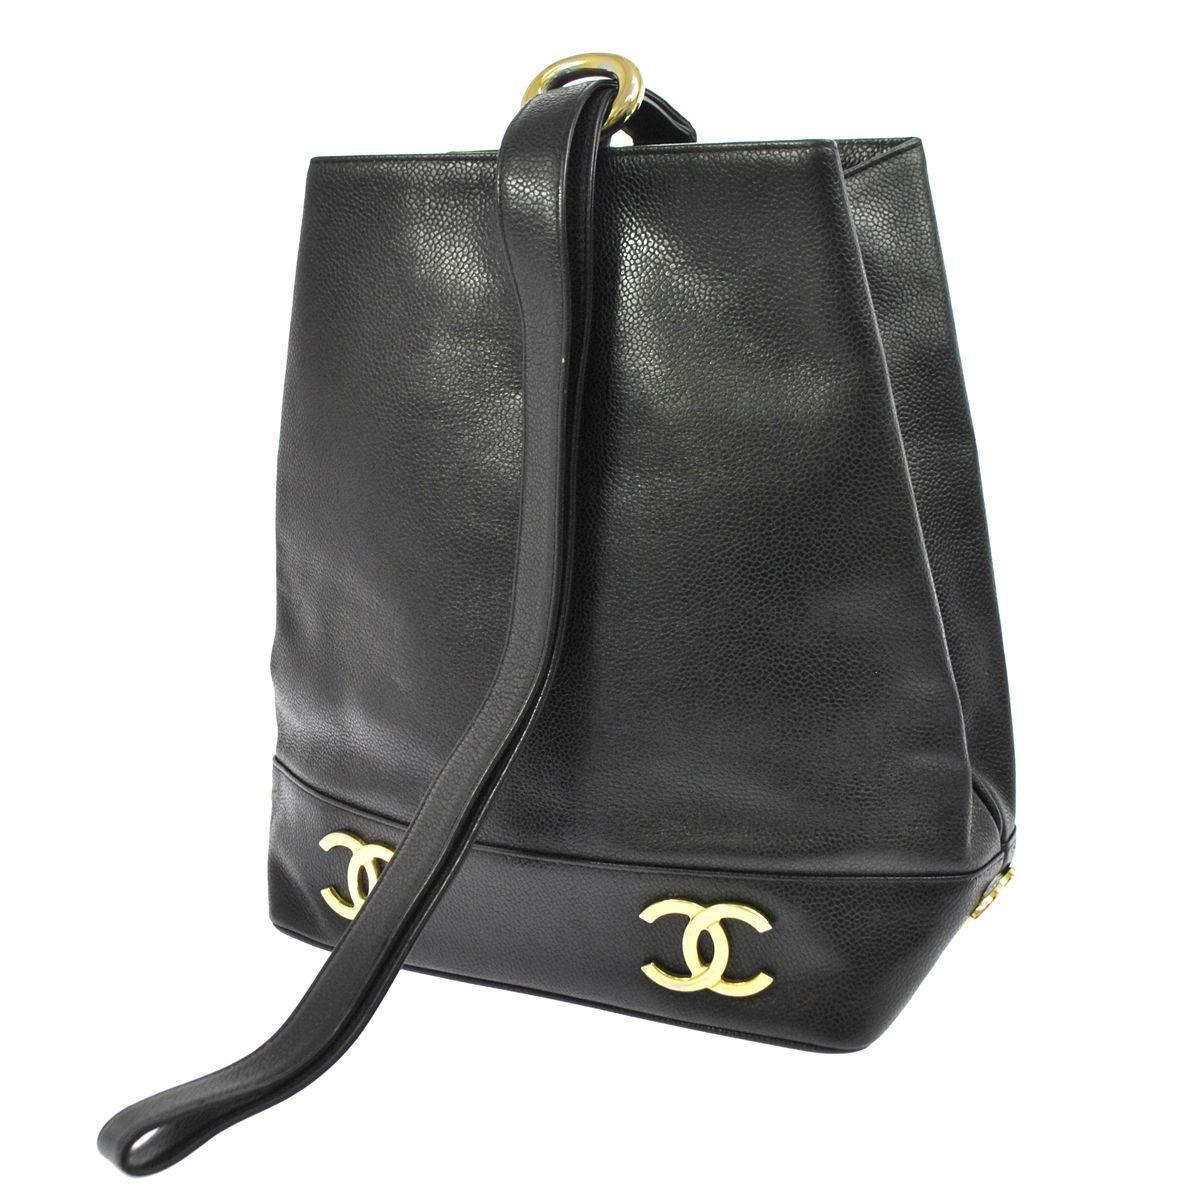 79a366ad2359 Chanel Black Caviar Leather Gold Charm Top Handle Sling Back Bag at 1stdibs